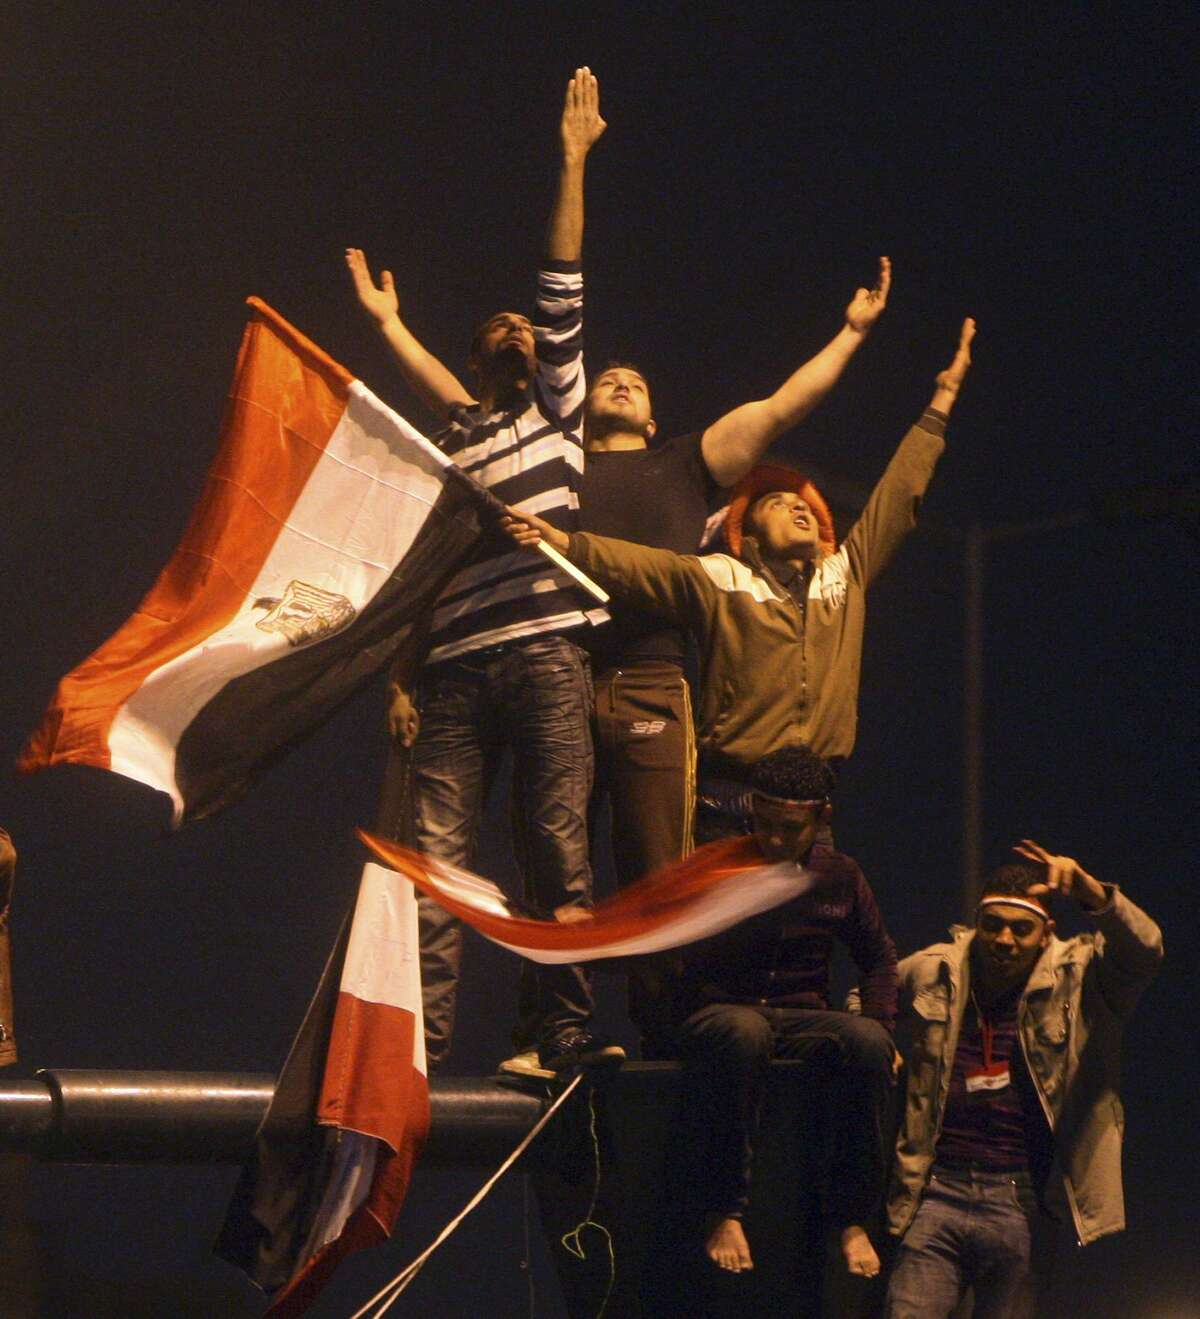 Egyptians celebrate in Tahrir Square after President Hosni Mubarak resigned and handed power to the military in Cairo, Egypt, Friday, Feb. 11, 2011. Egypt exploded with joy, tears, and relief after pro-democracy protesters brought down President Hosni Mubarak with a momentous march on his palaces and state TV. Mubarak, who until the end seemed unable to grasp the depth of resentment over his three decades of authoritarian rule, finally resigned Friday and handed power to the military.(AP Photo/Ahmed Ali)